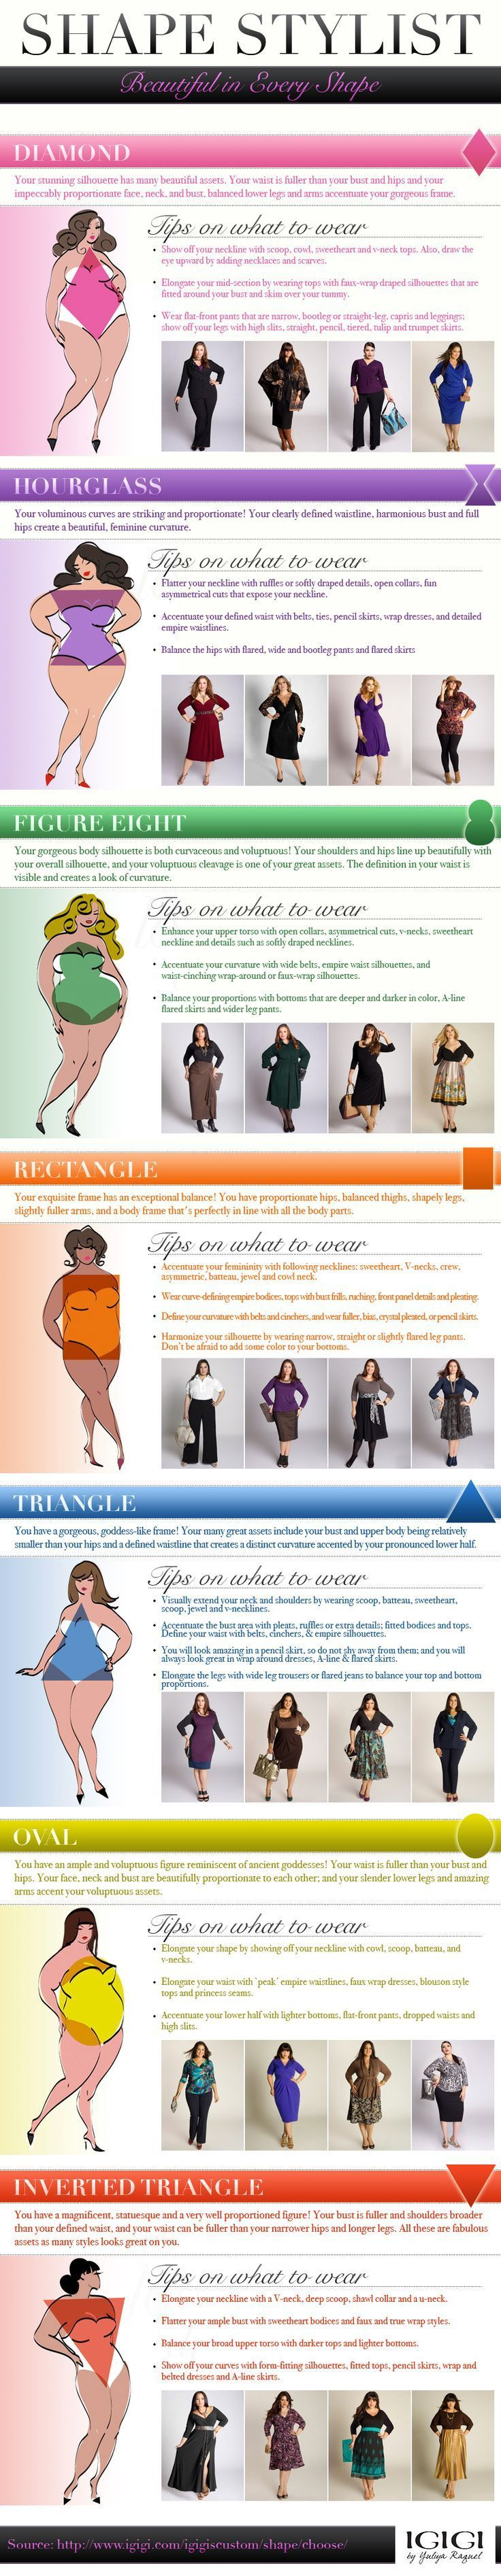 Plus Size Fashion: Dress for your Body Shape - AbbeyPost Made To Measure Blog - very interesting!